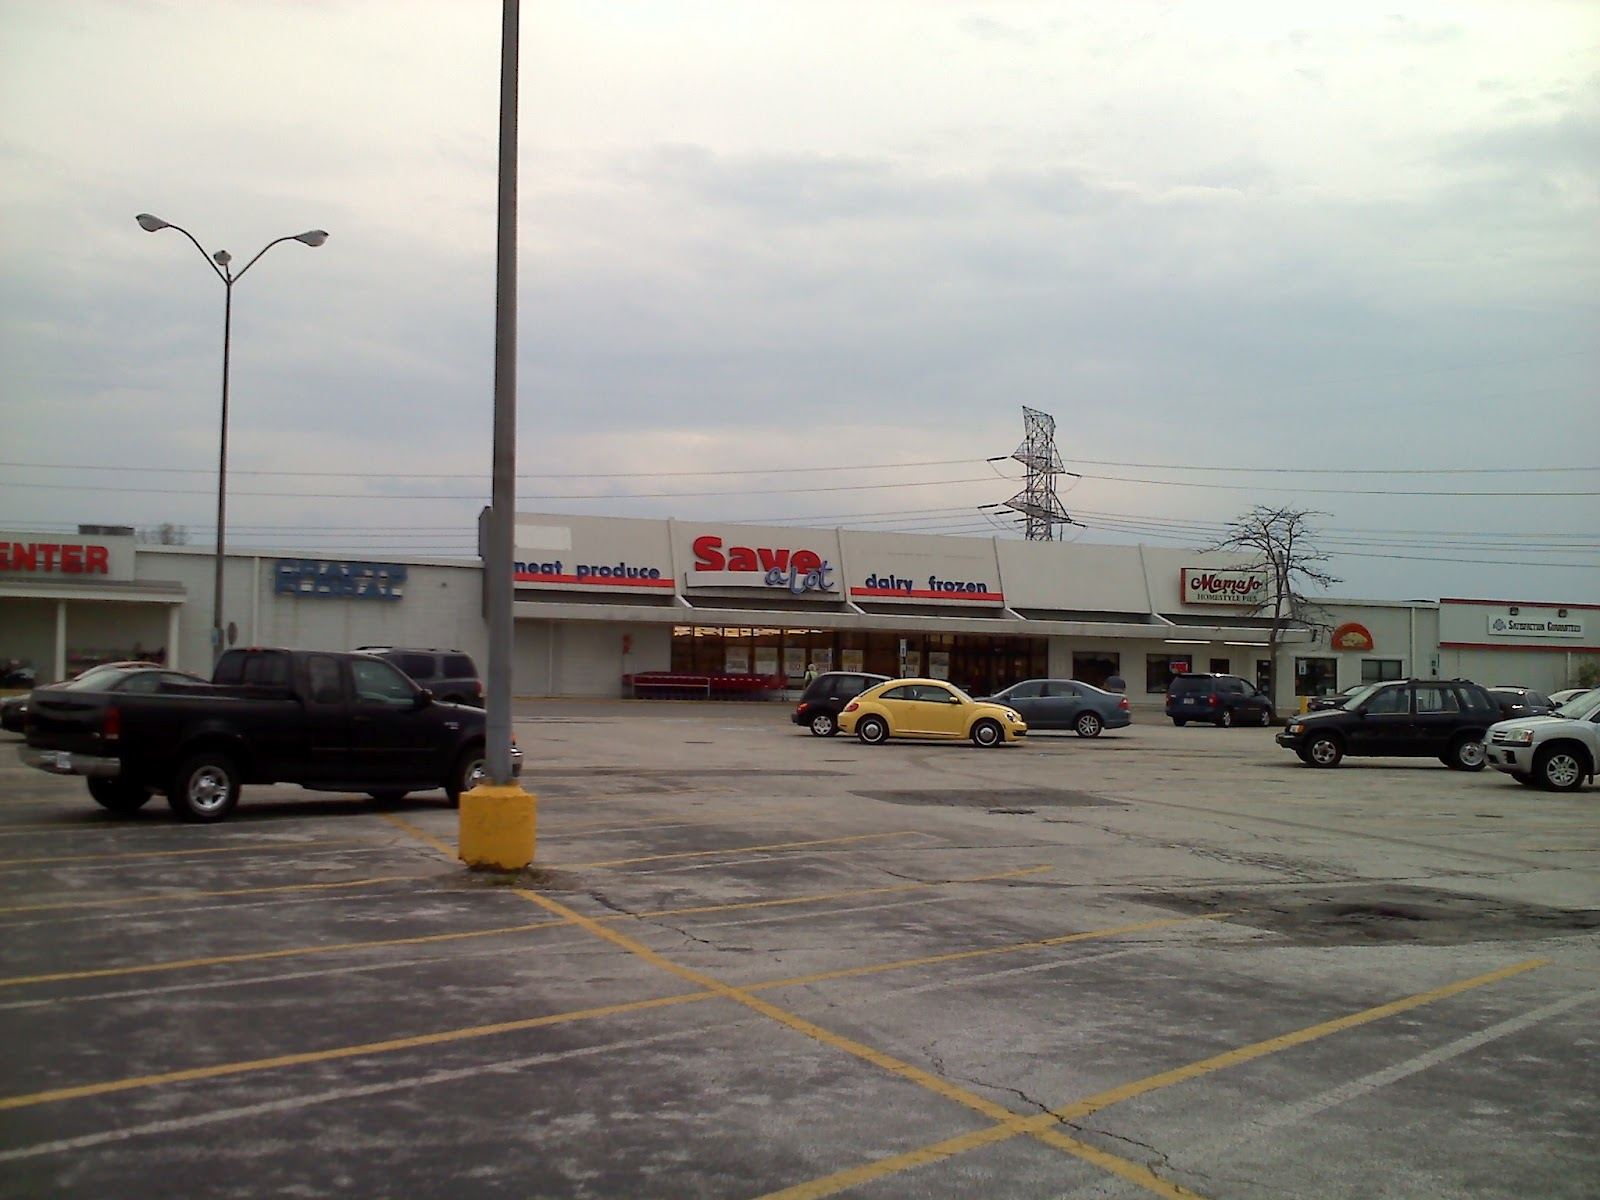 Dead and dying retail former kmart and rini rego in amherst ohio gumiabroncs Choice Image